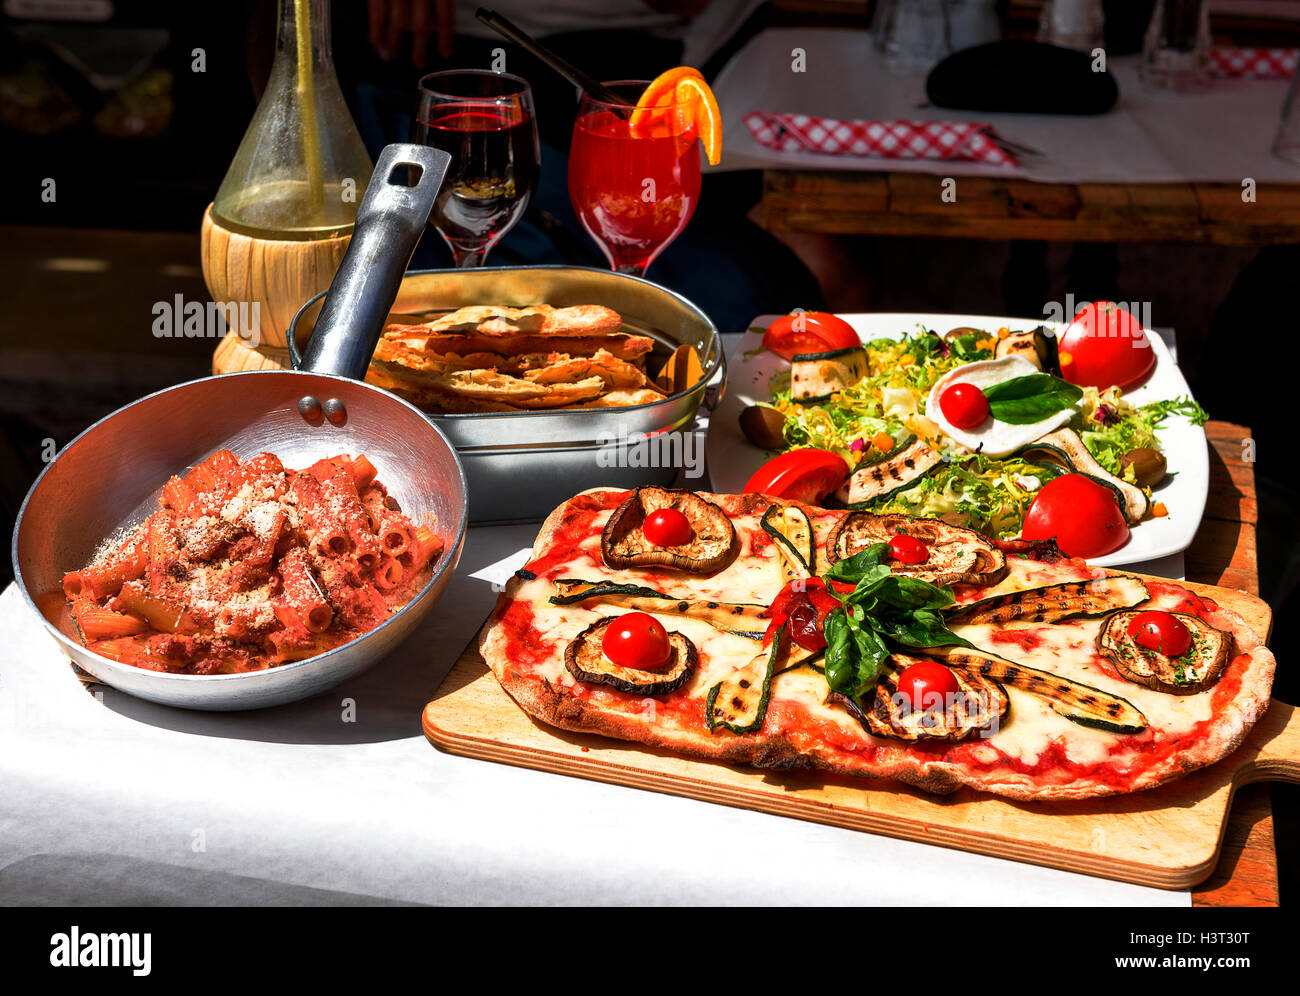 Pasta Restaurant In Rome City Italy South Europe Egg Noodles Stock Photo Alamy